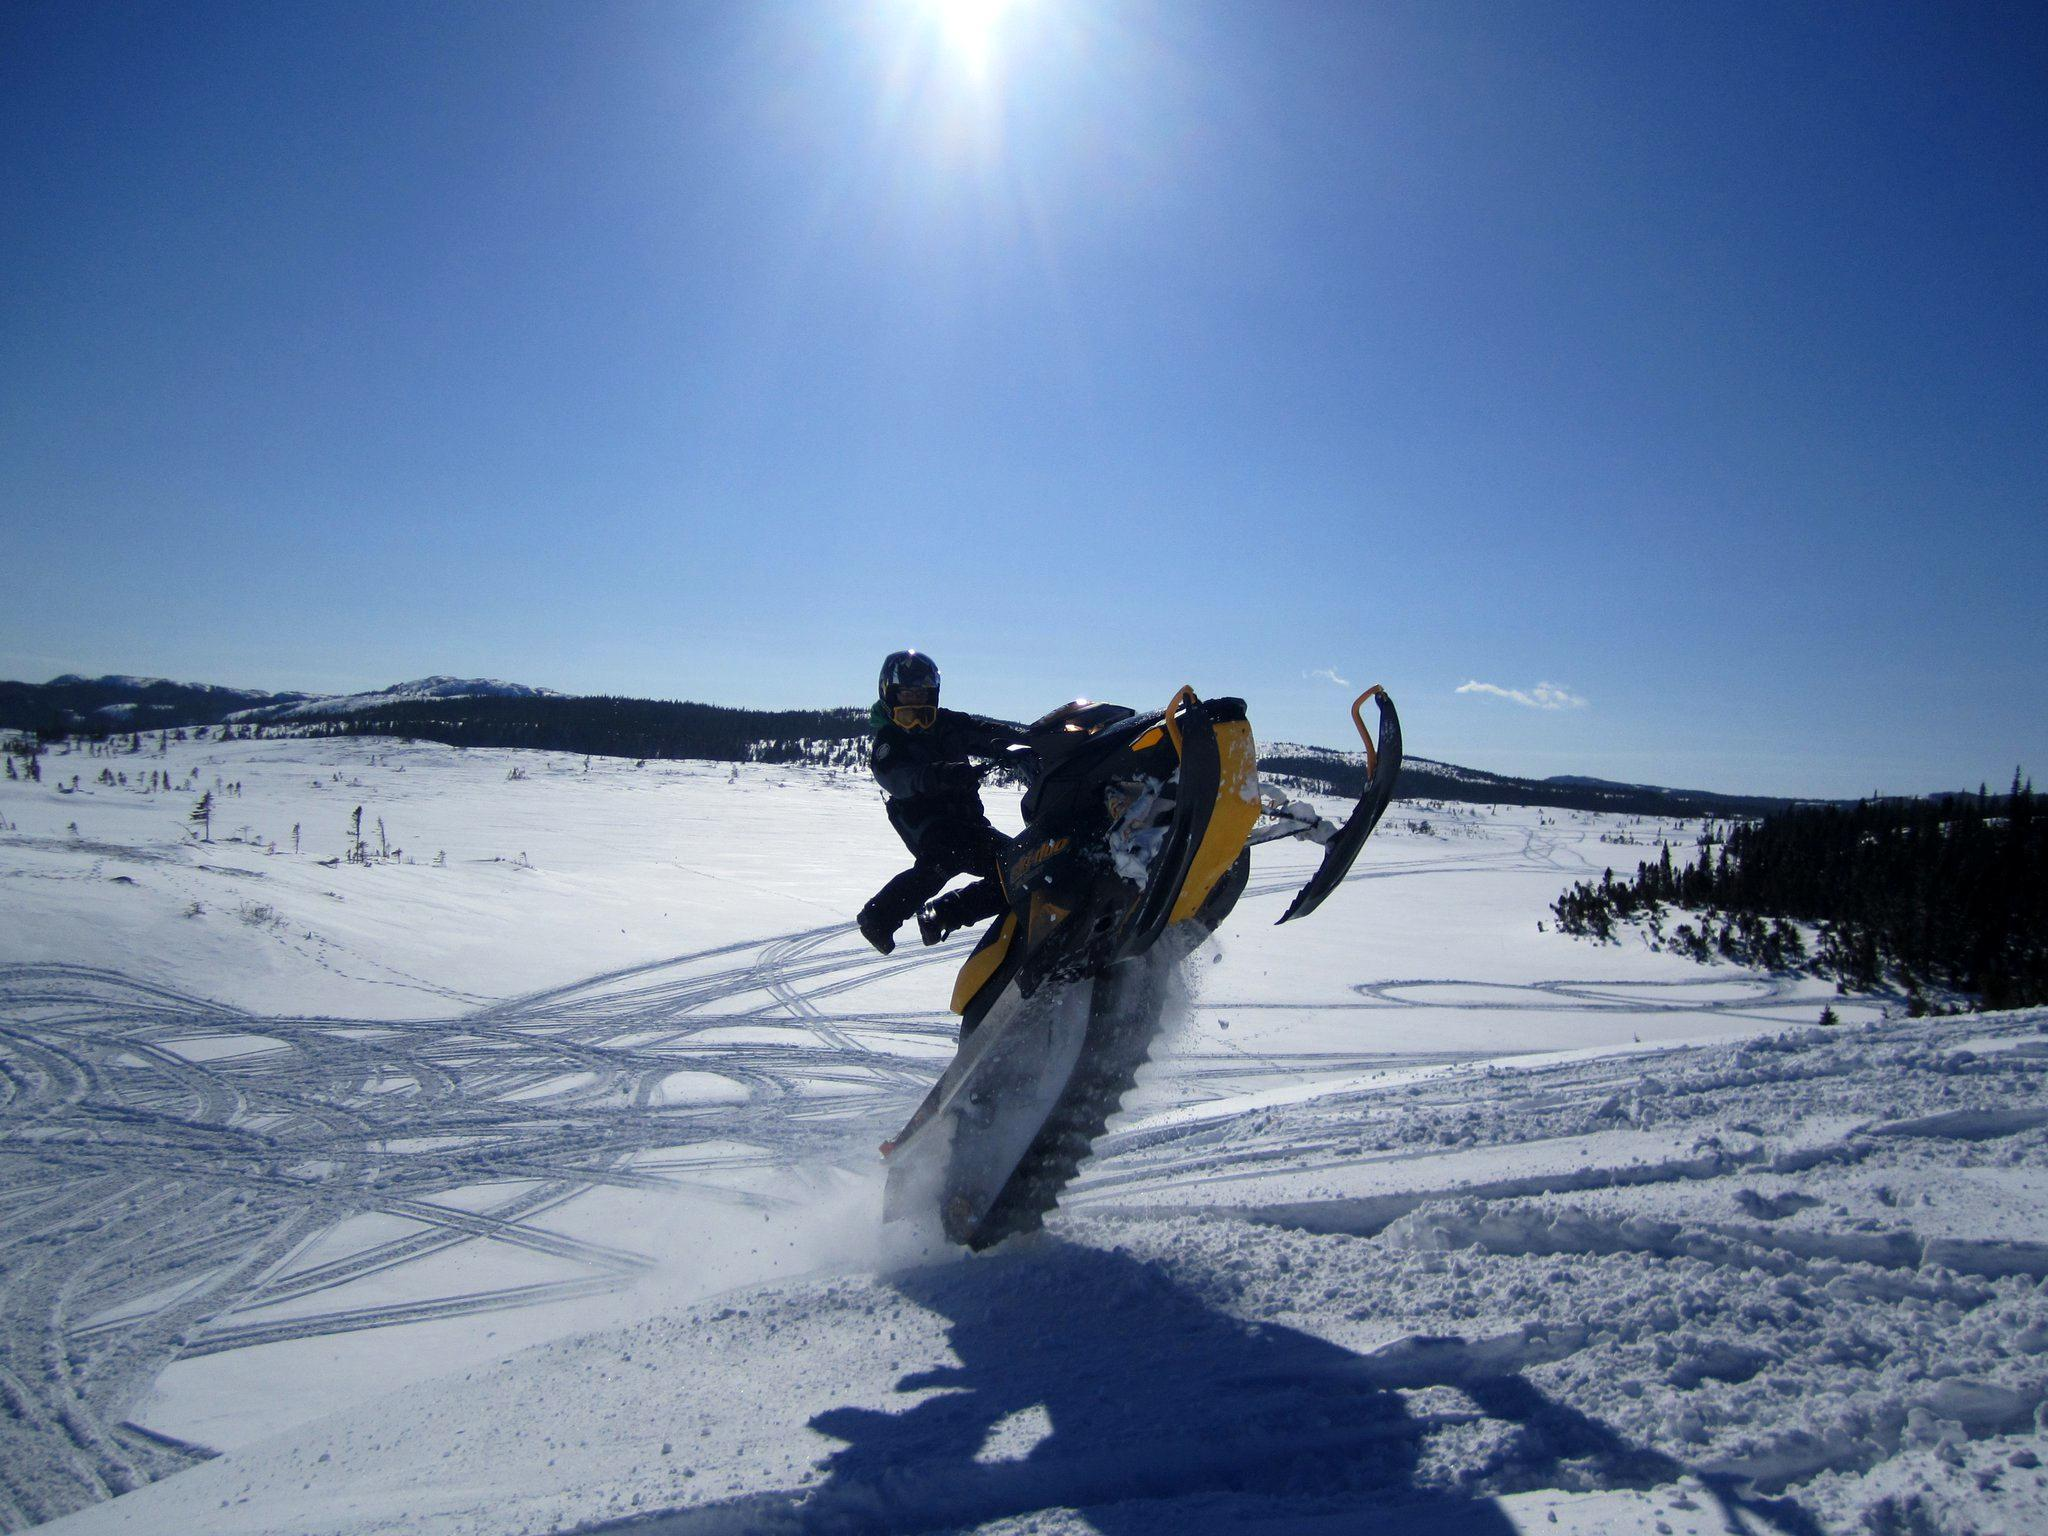 Ski-Doo - BRP | The Most Popular Snowmobiles in the World